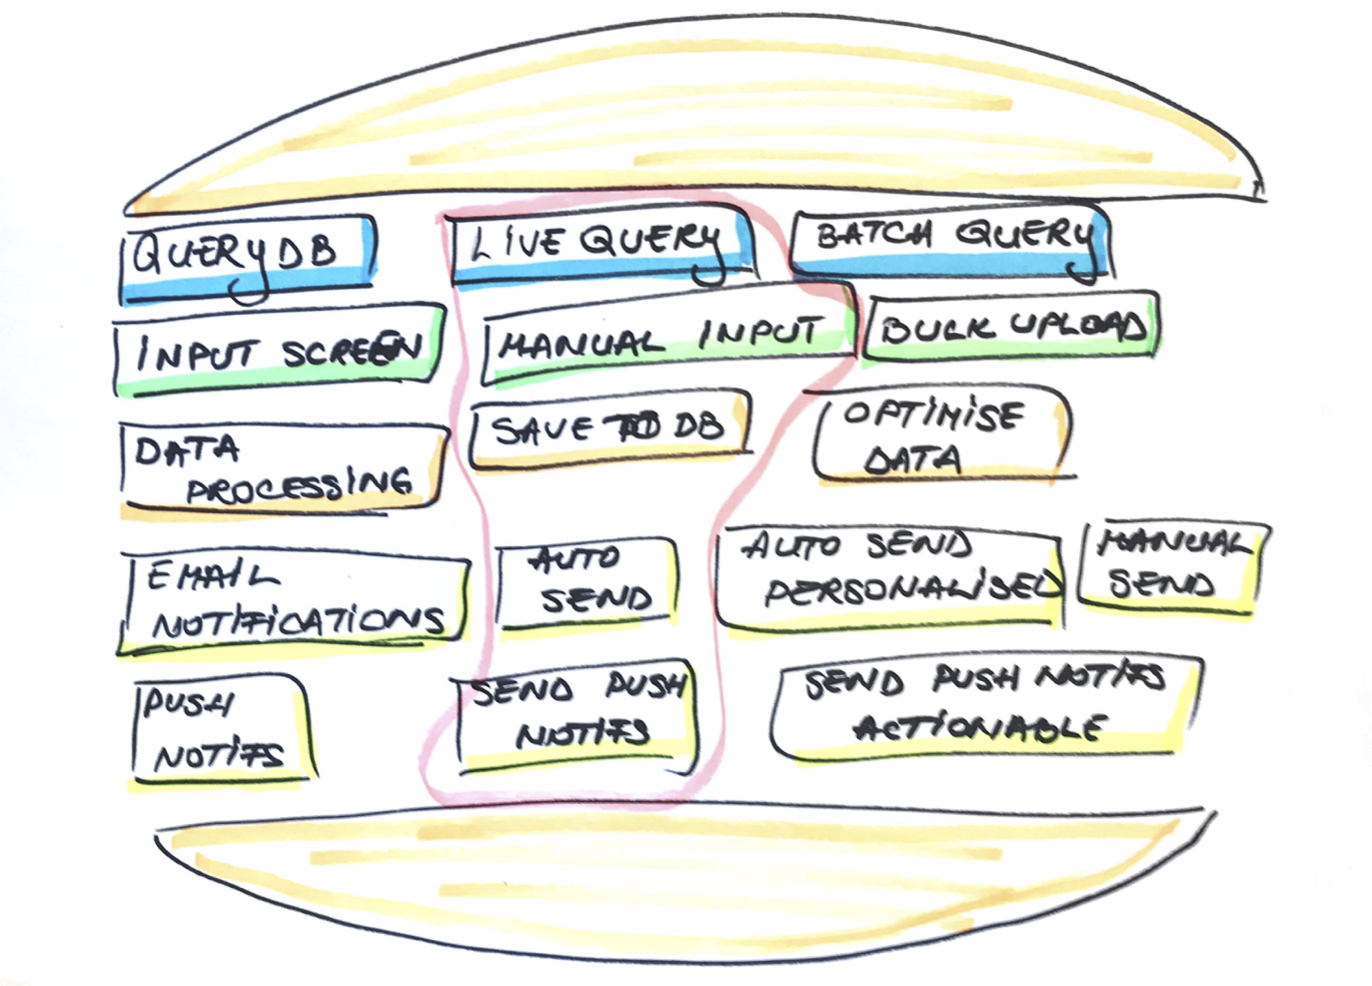 Hamburger Method to Split User Stories in Scrum—the details of each bite as user story in Agile.